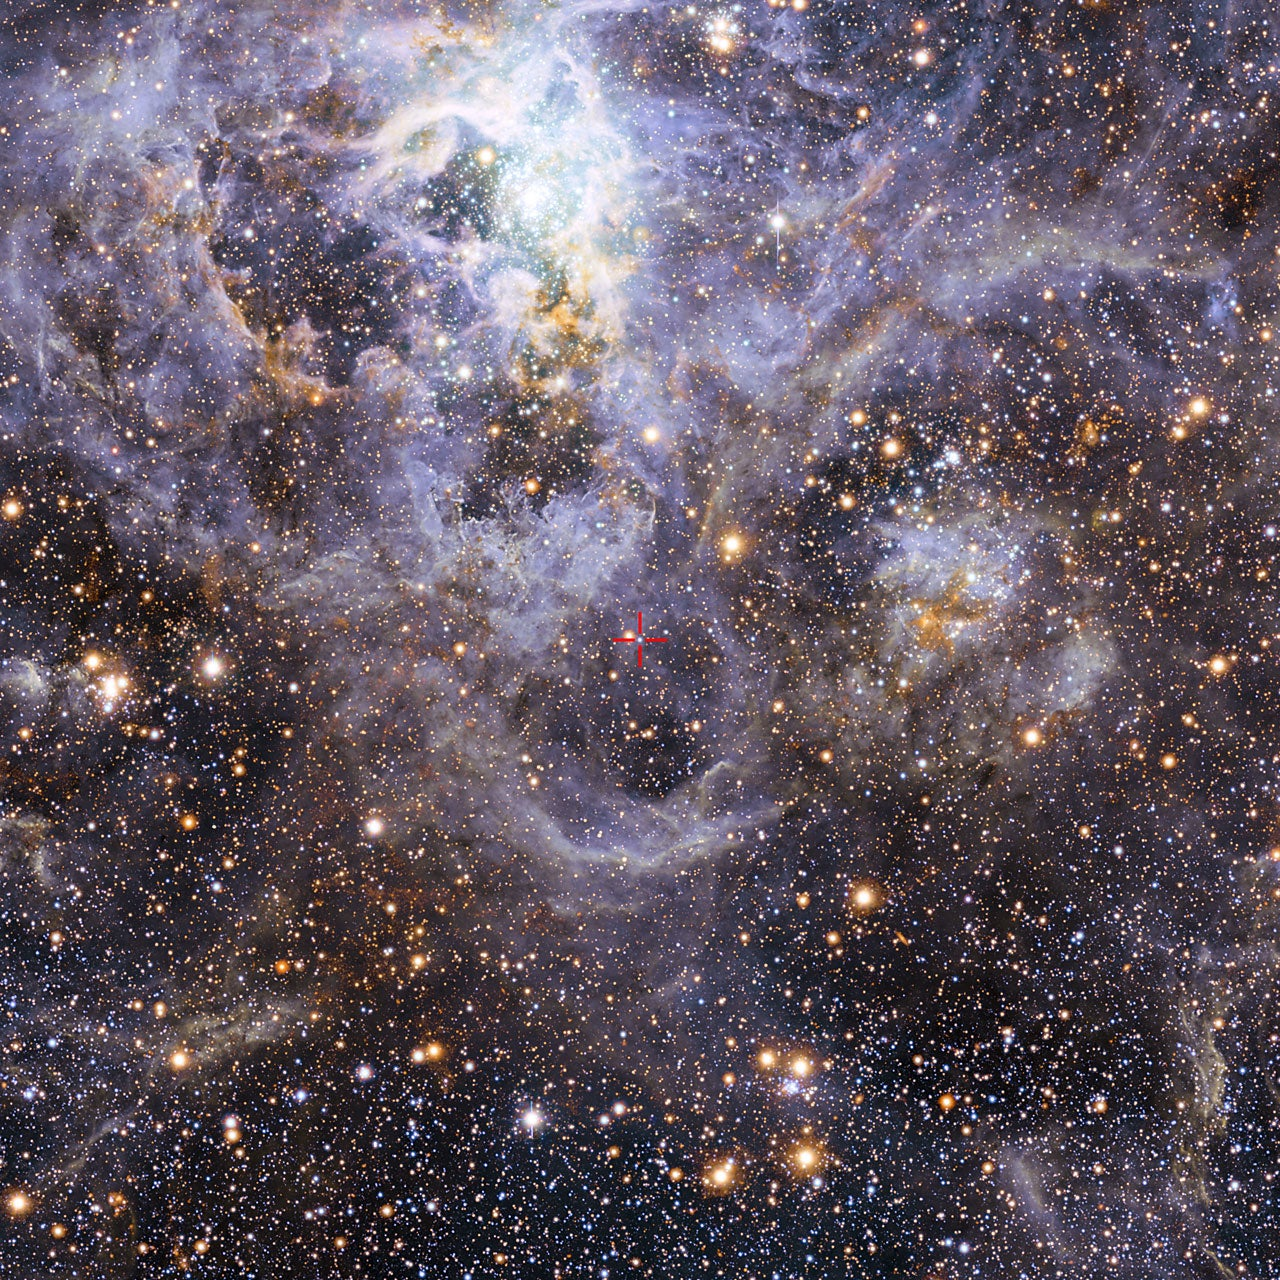 These Star-Crossed Stellar Lovers Are Heading for a Disaster of Cosmic Proportions